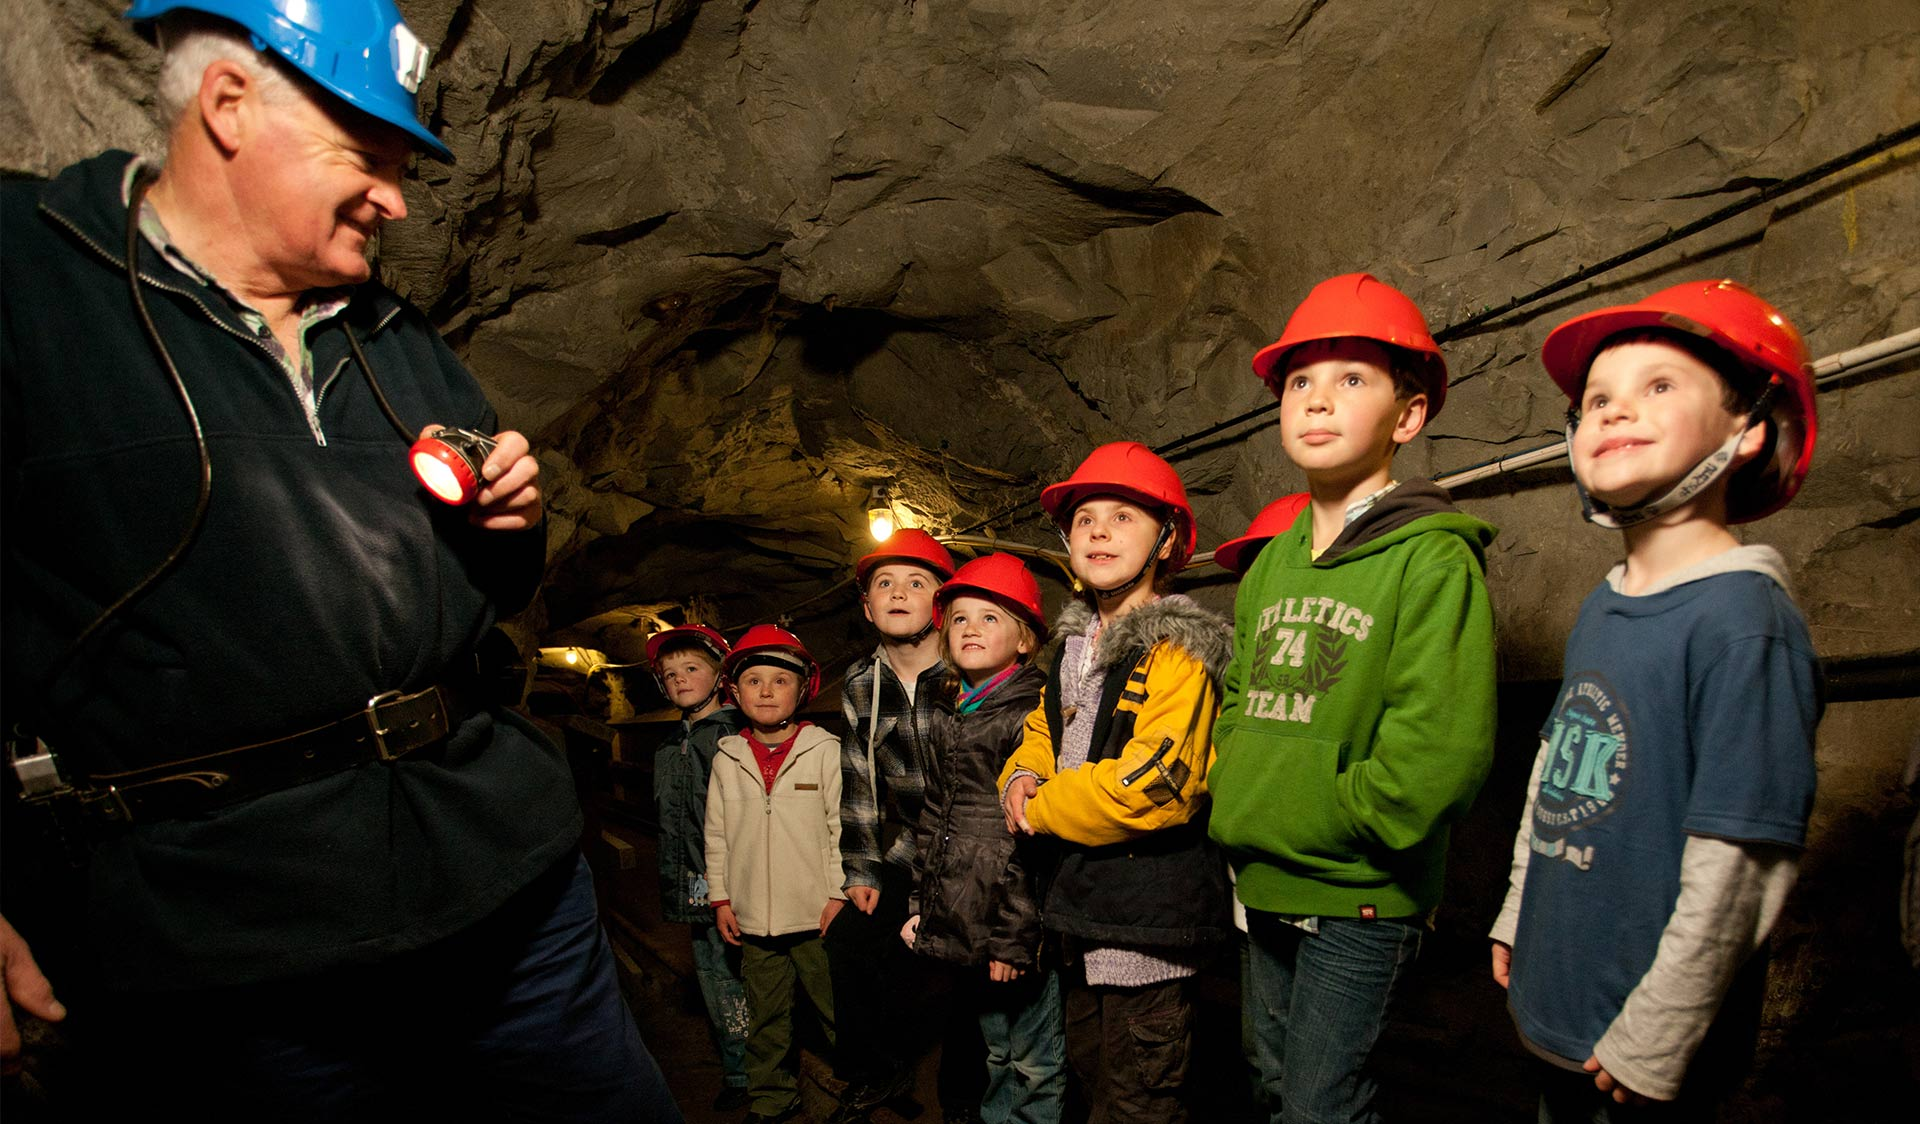 A group of children on a tour in the State Coal Mine.